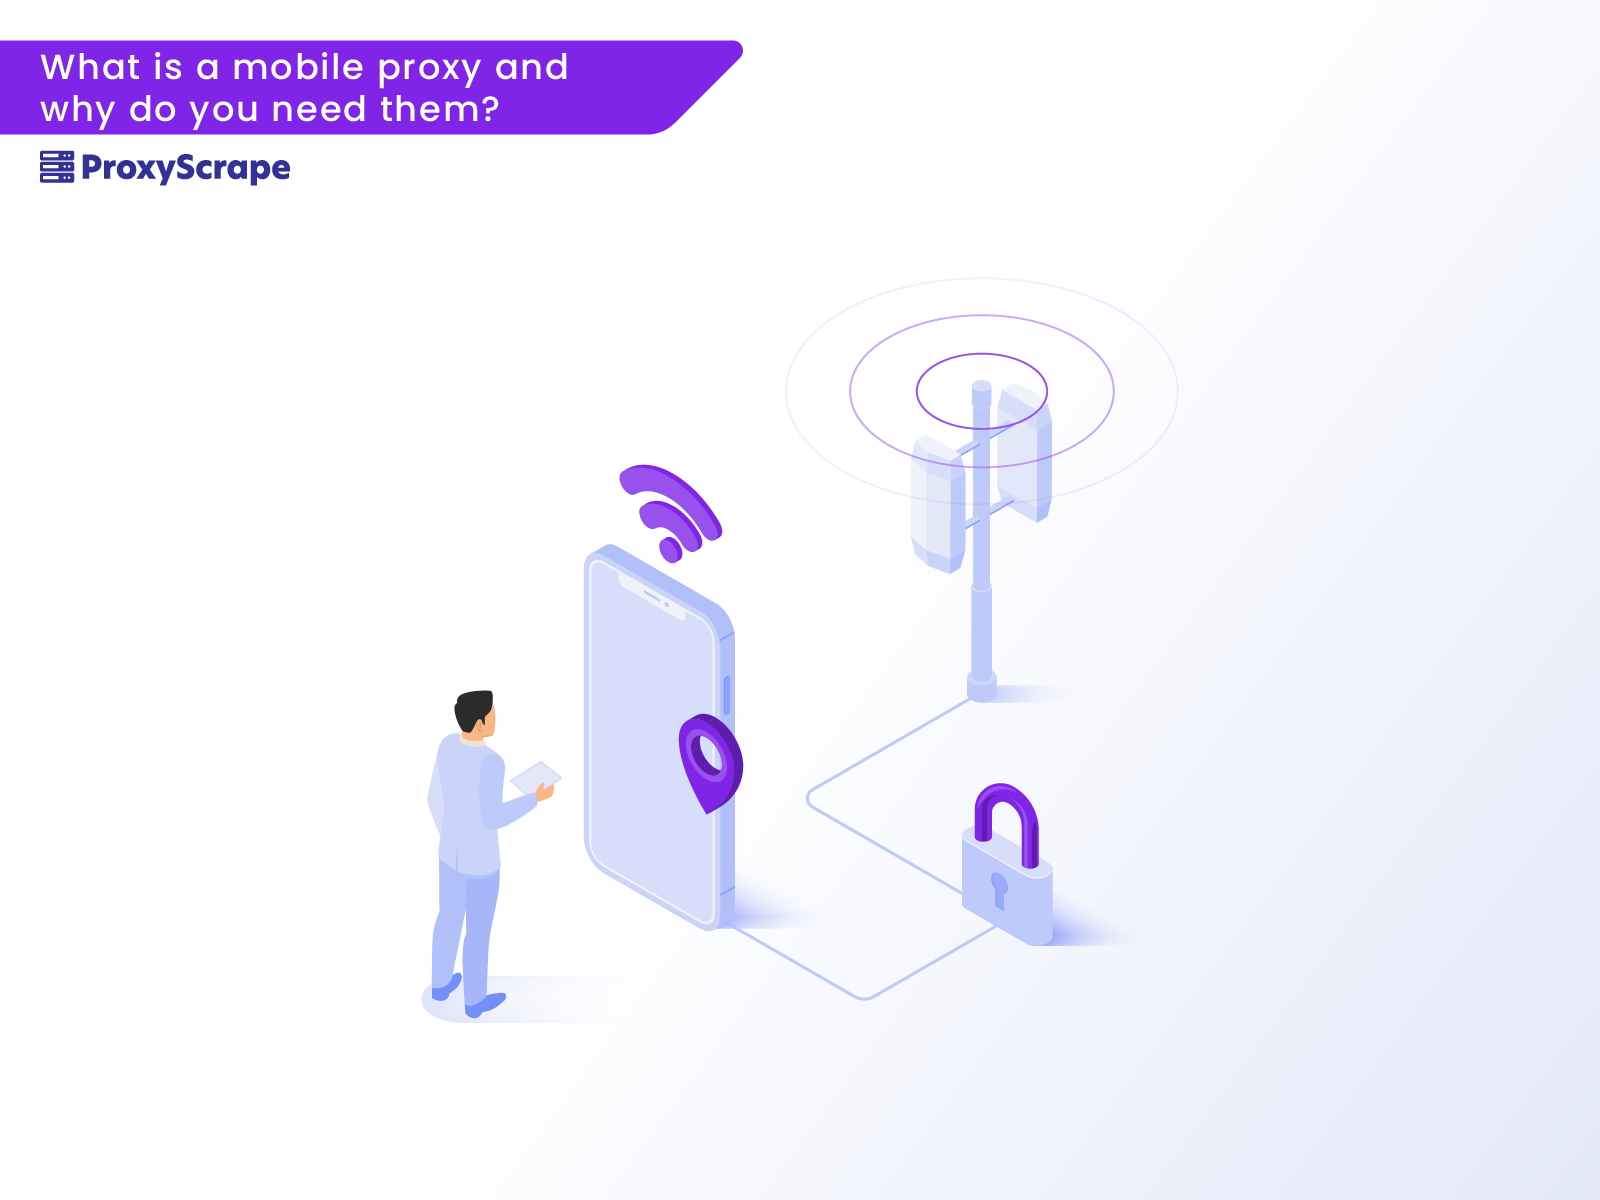 What is a mobile proxy and why do you need them